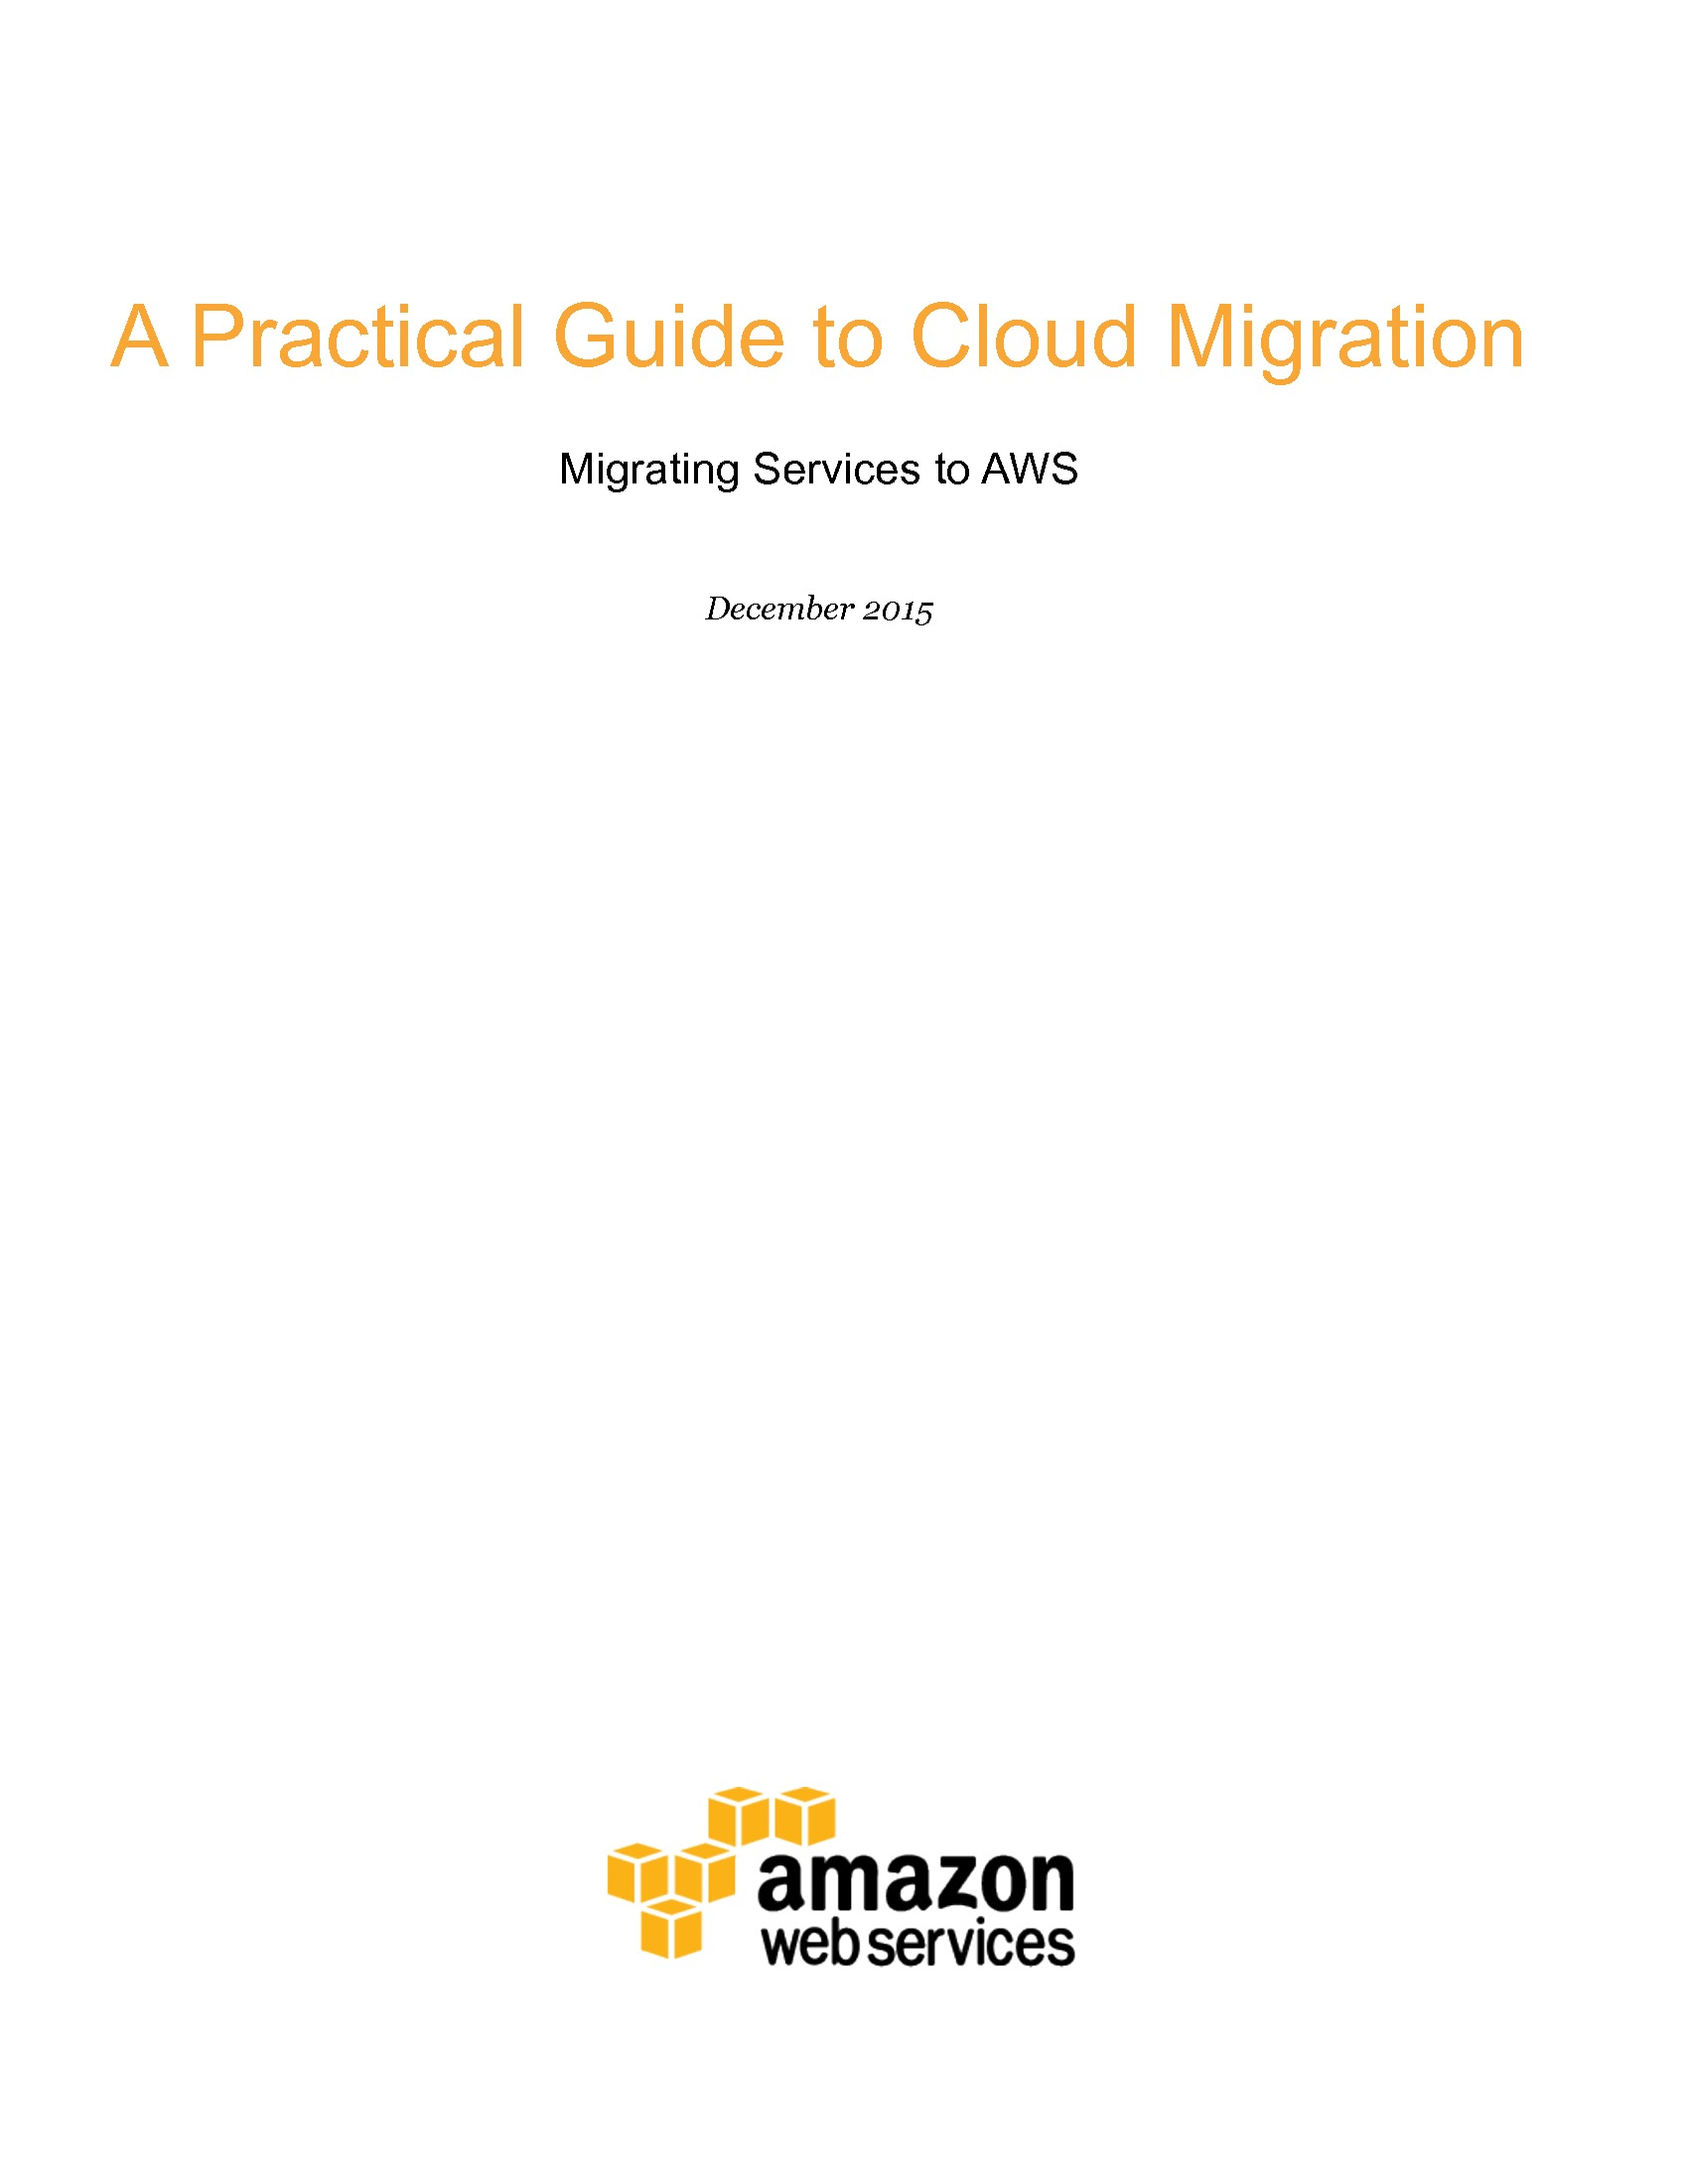 A Practical Guide to Cloud Migration